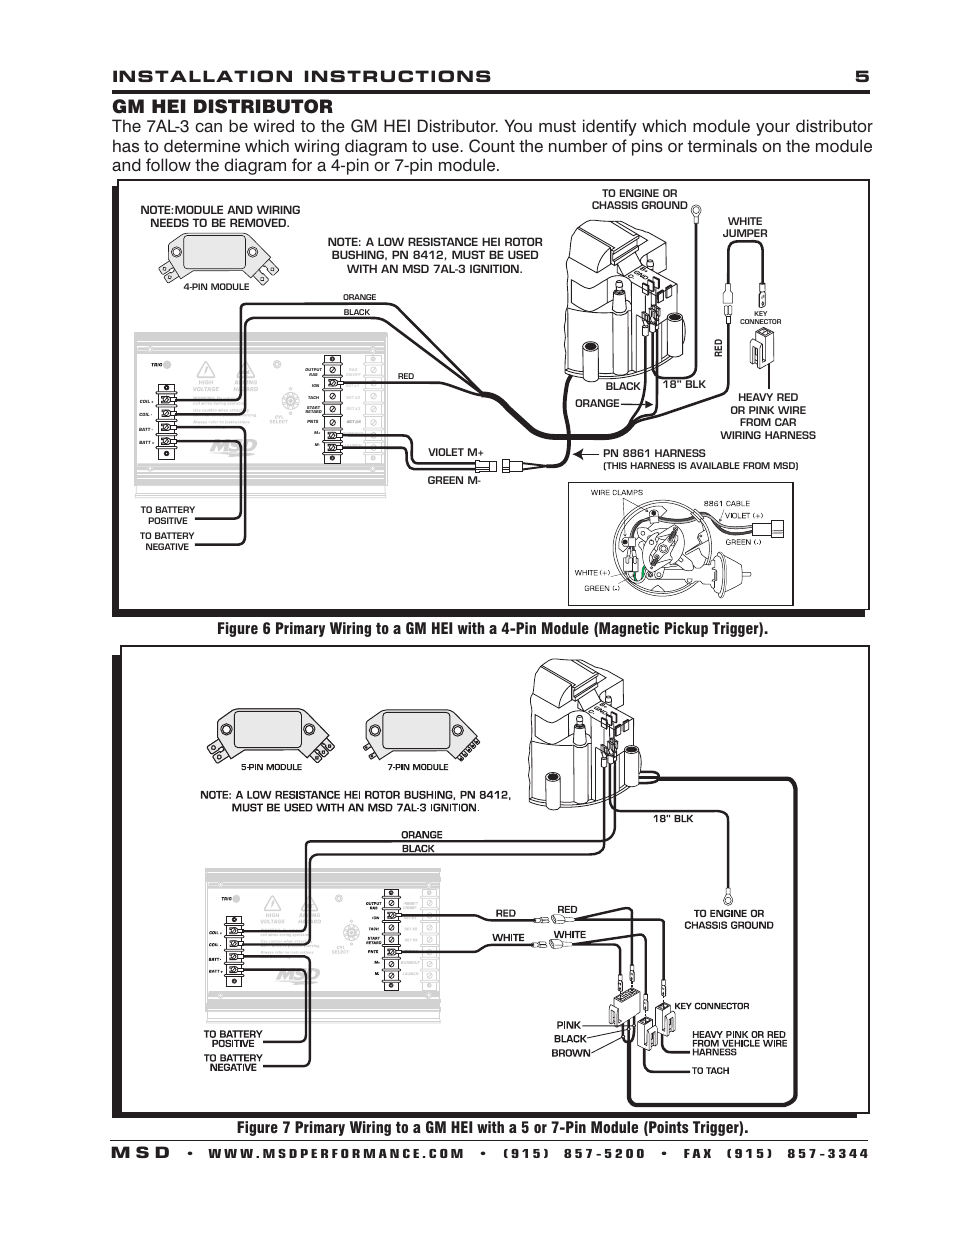 msd 7330 7al 3 ignition control installation page5?resize\\\\\\\=665%2C861 revtech ignition wiring diagram on revtech download wirning diagrams  at webbmarketing.co